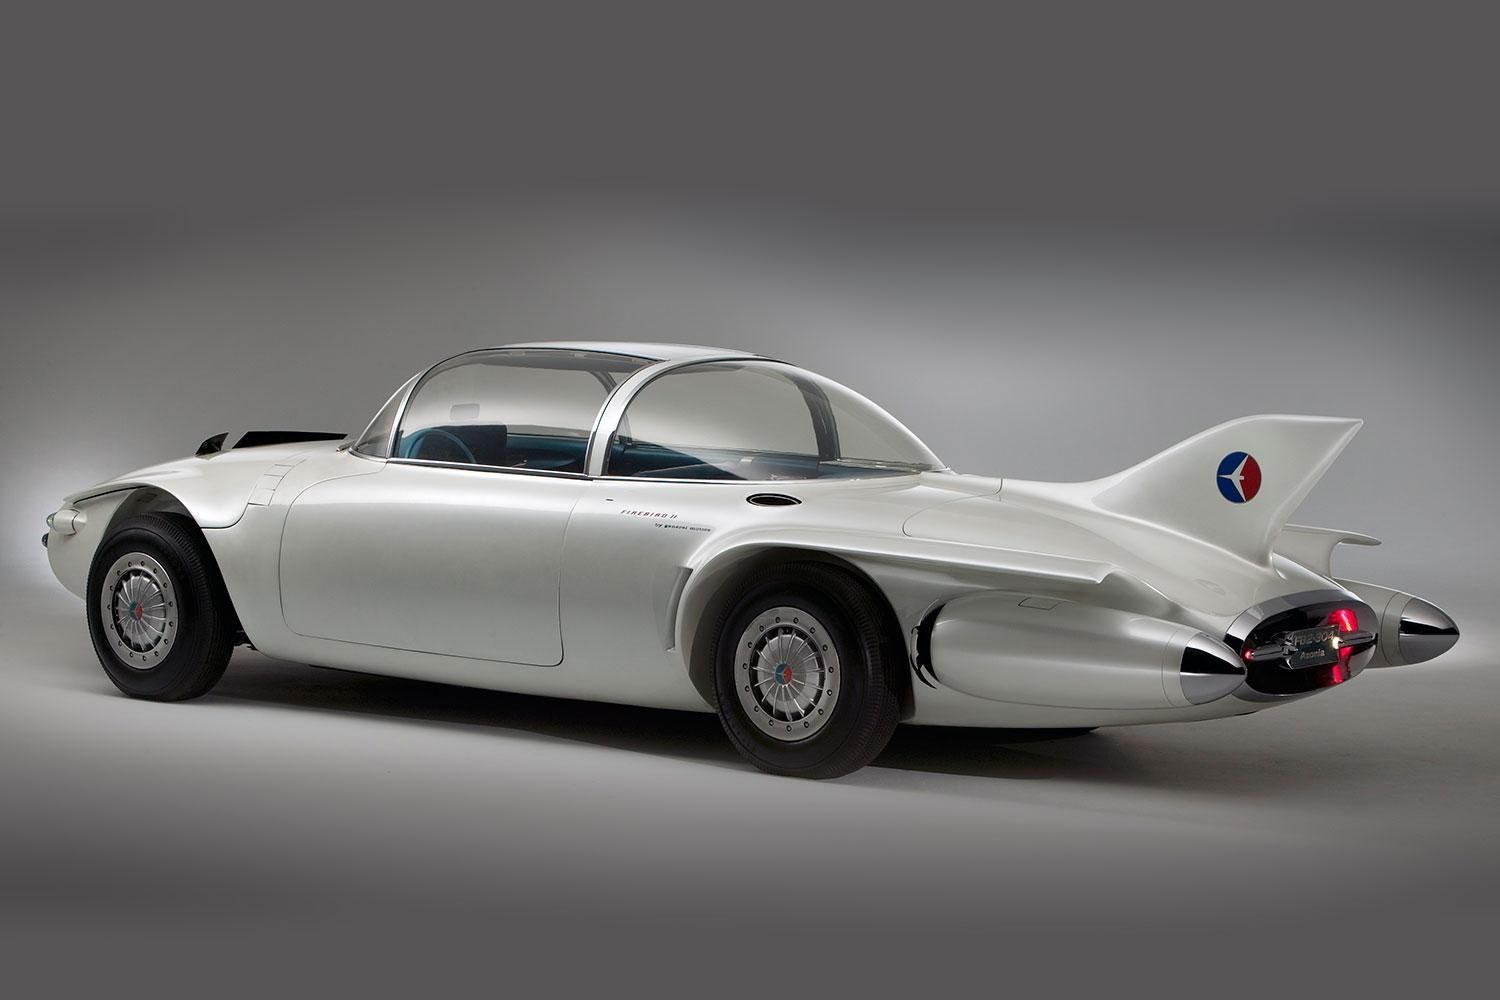 1956 chrysler boano auto shows car and driver - Concept Cars Of The Past 1956 Gm Firebird Ii